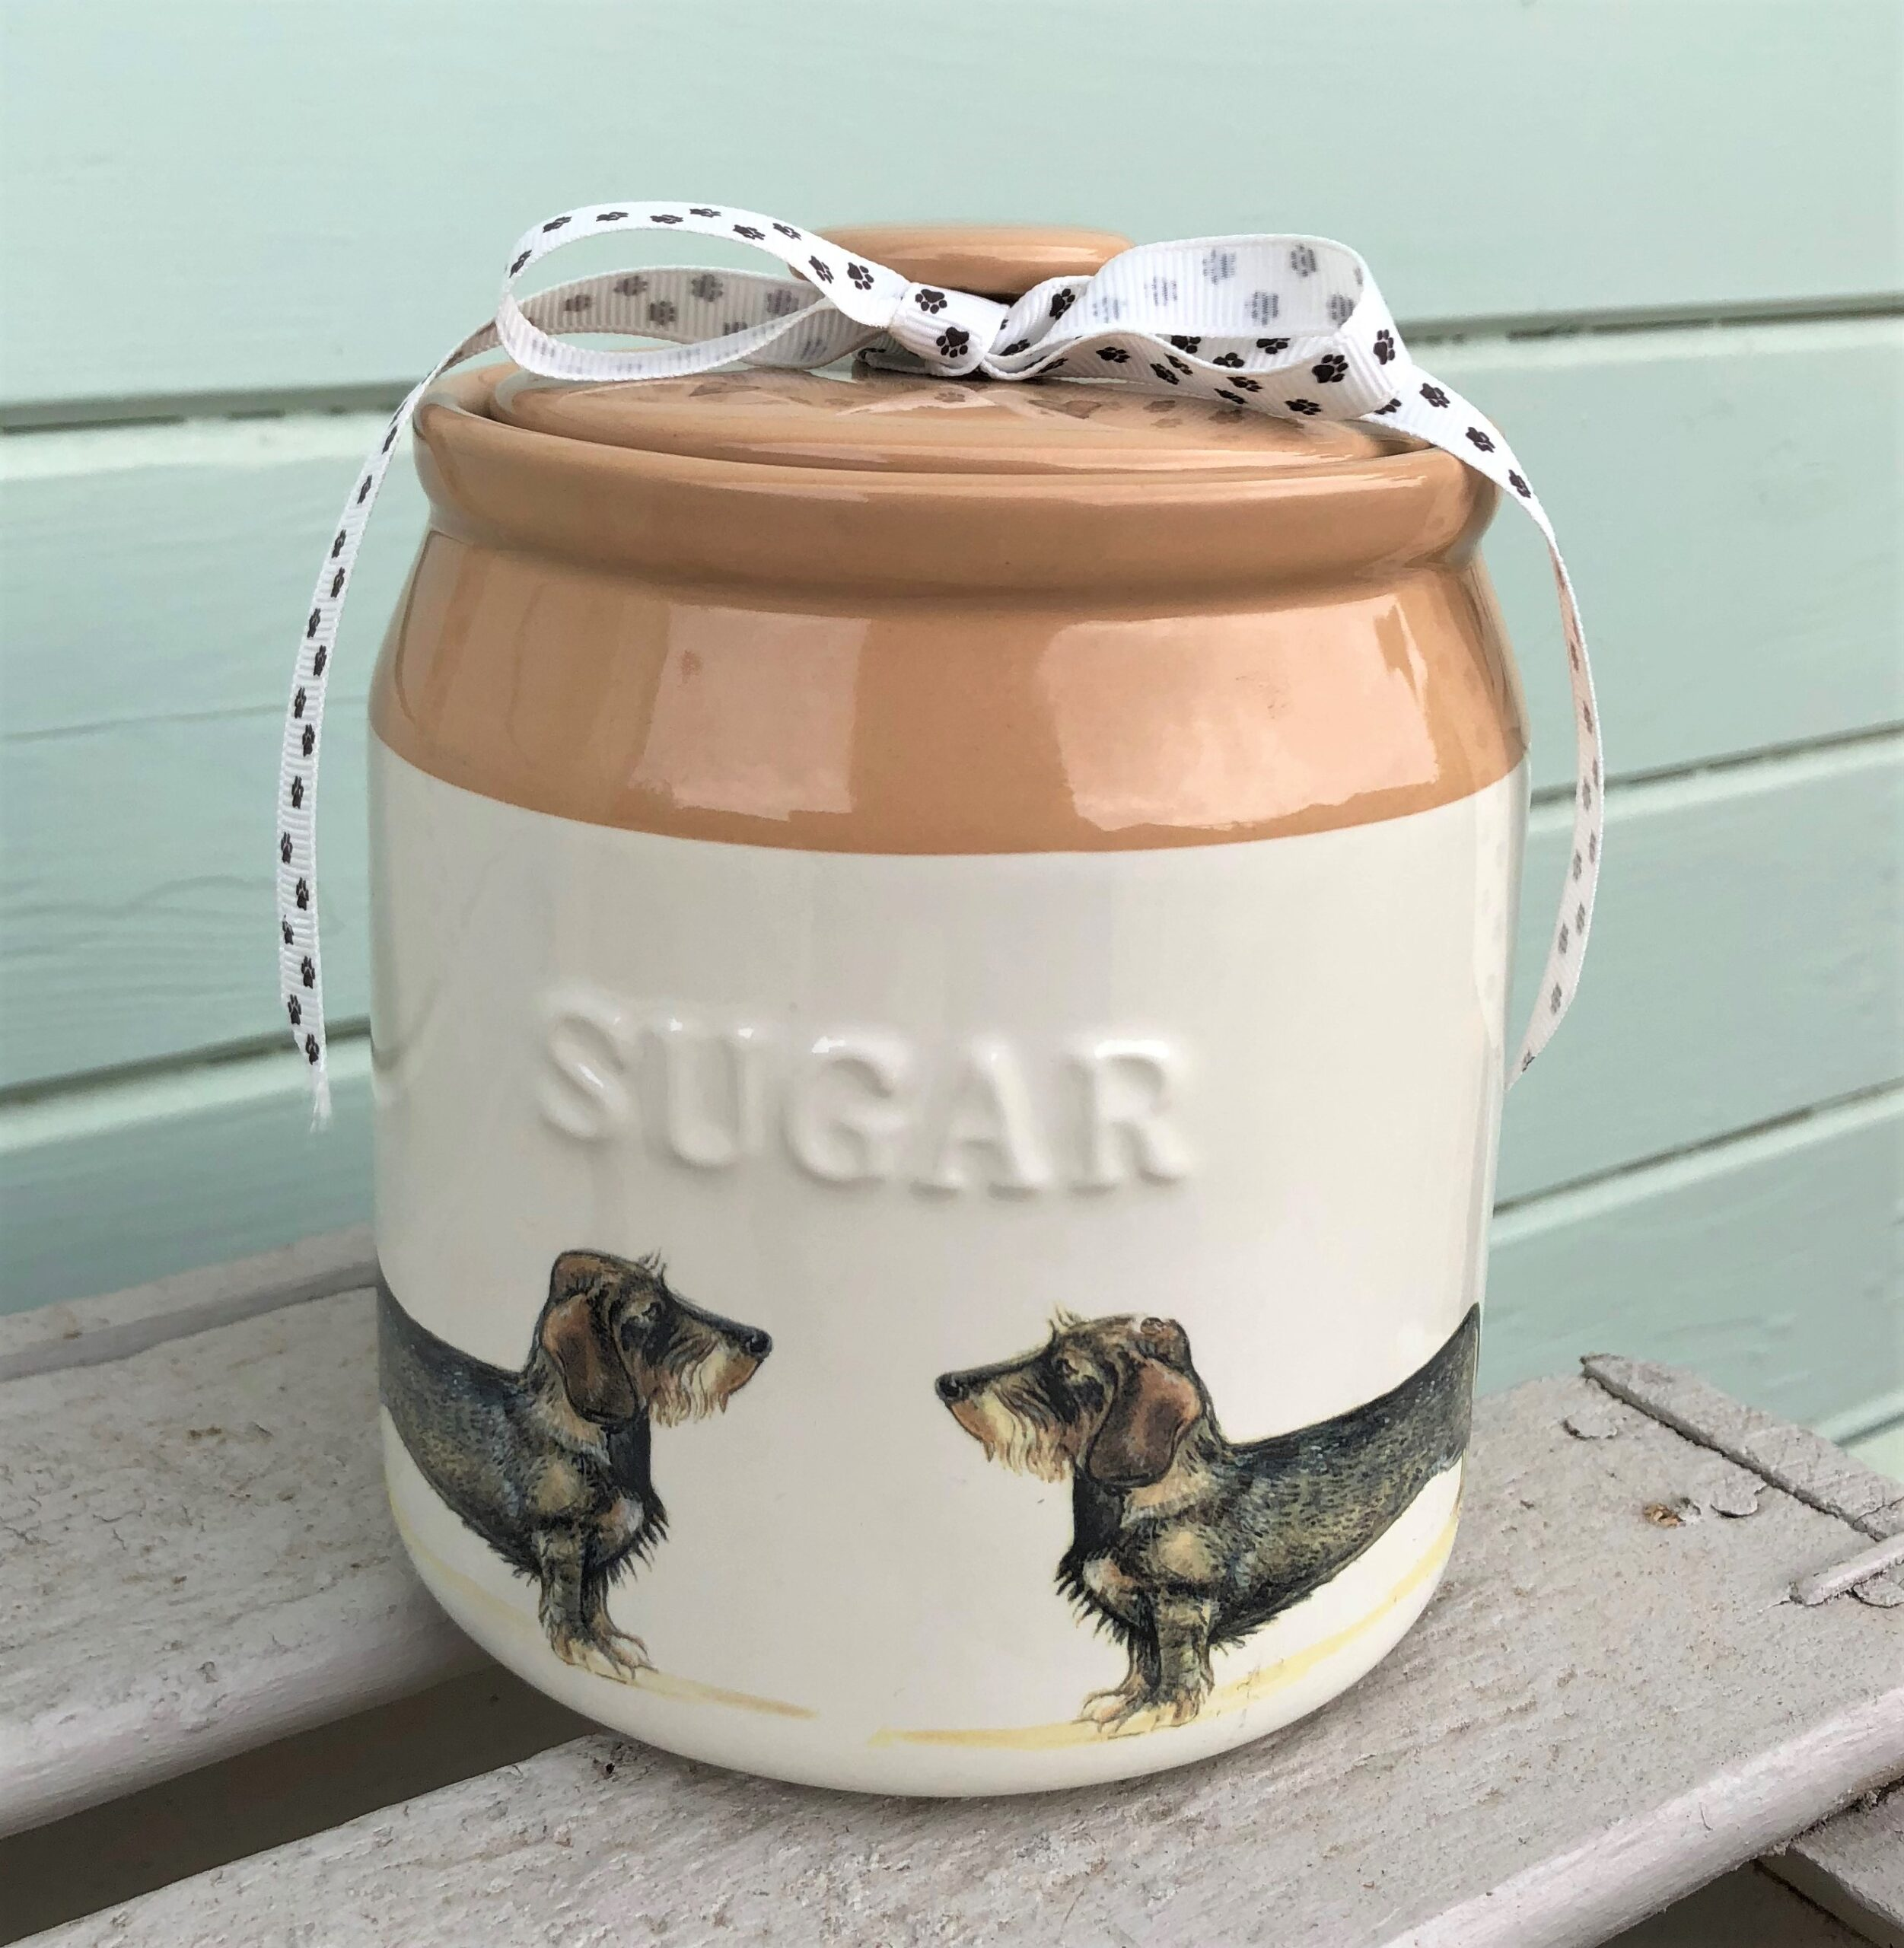 Wire Haired Dachshund Sugar Jar. £22.50 or why not make a set with Sugar, Coffee and Tea for £60